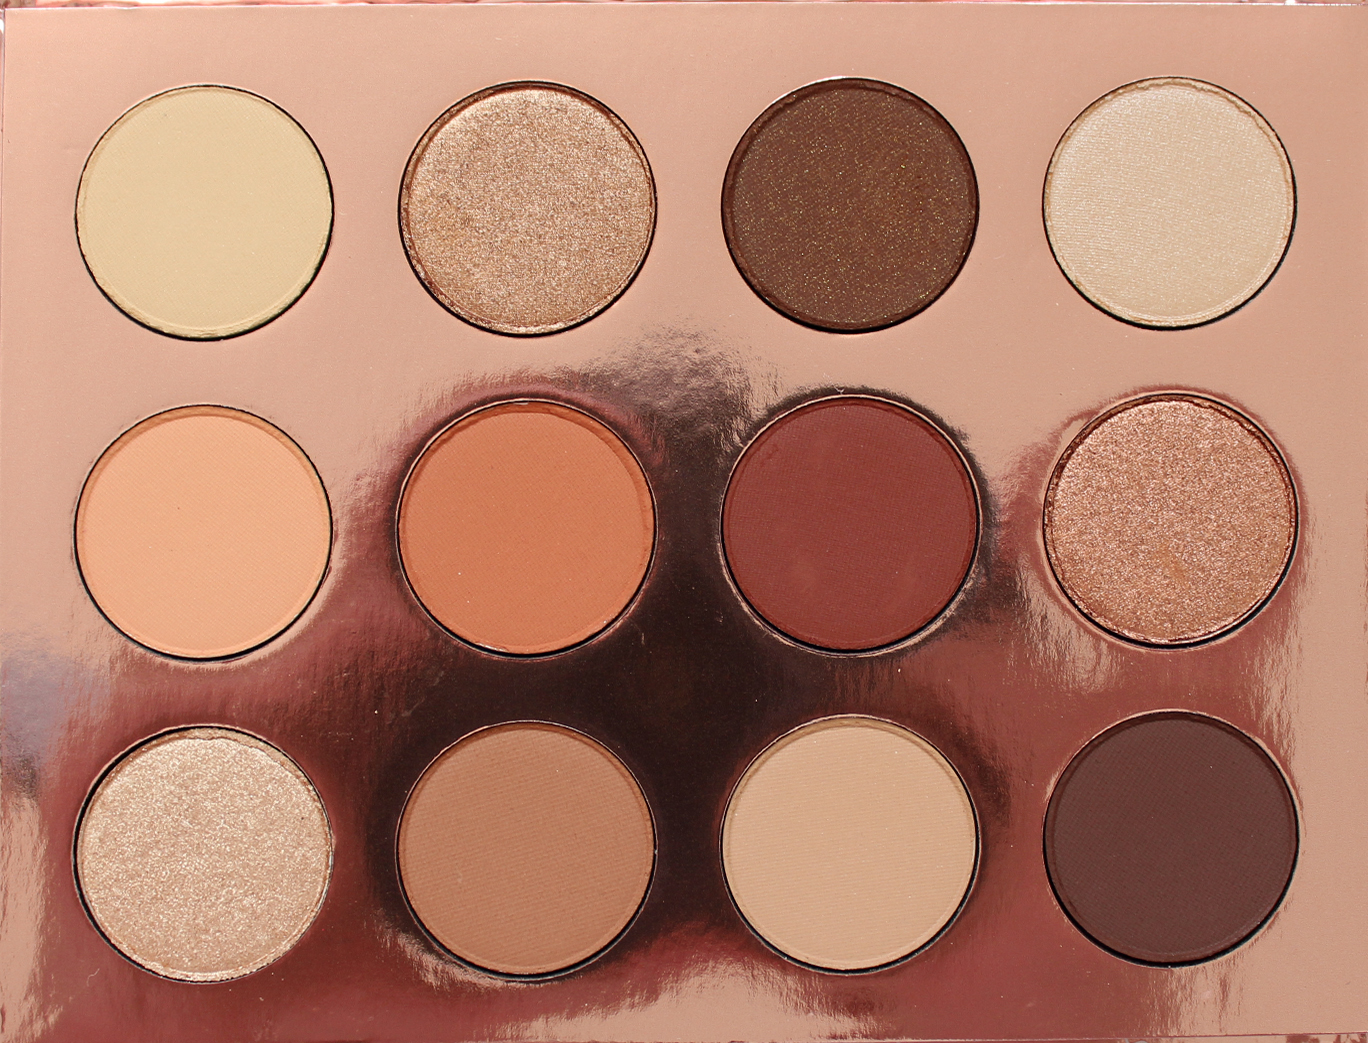 COLOURPOP | Double Entendre Pressed Shadow Palette - Review + Swatches - CassandraMyee